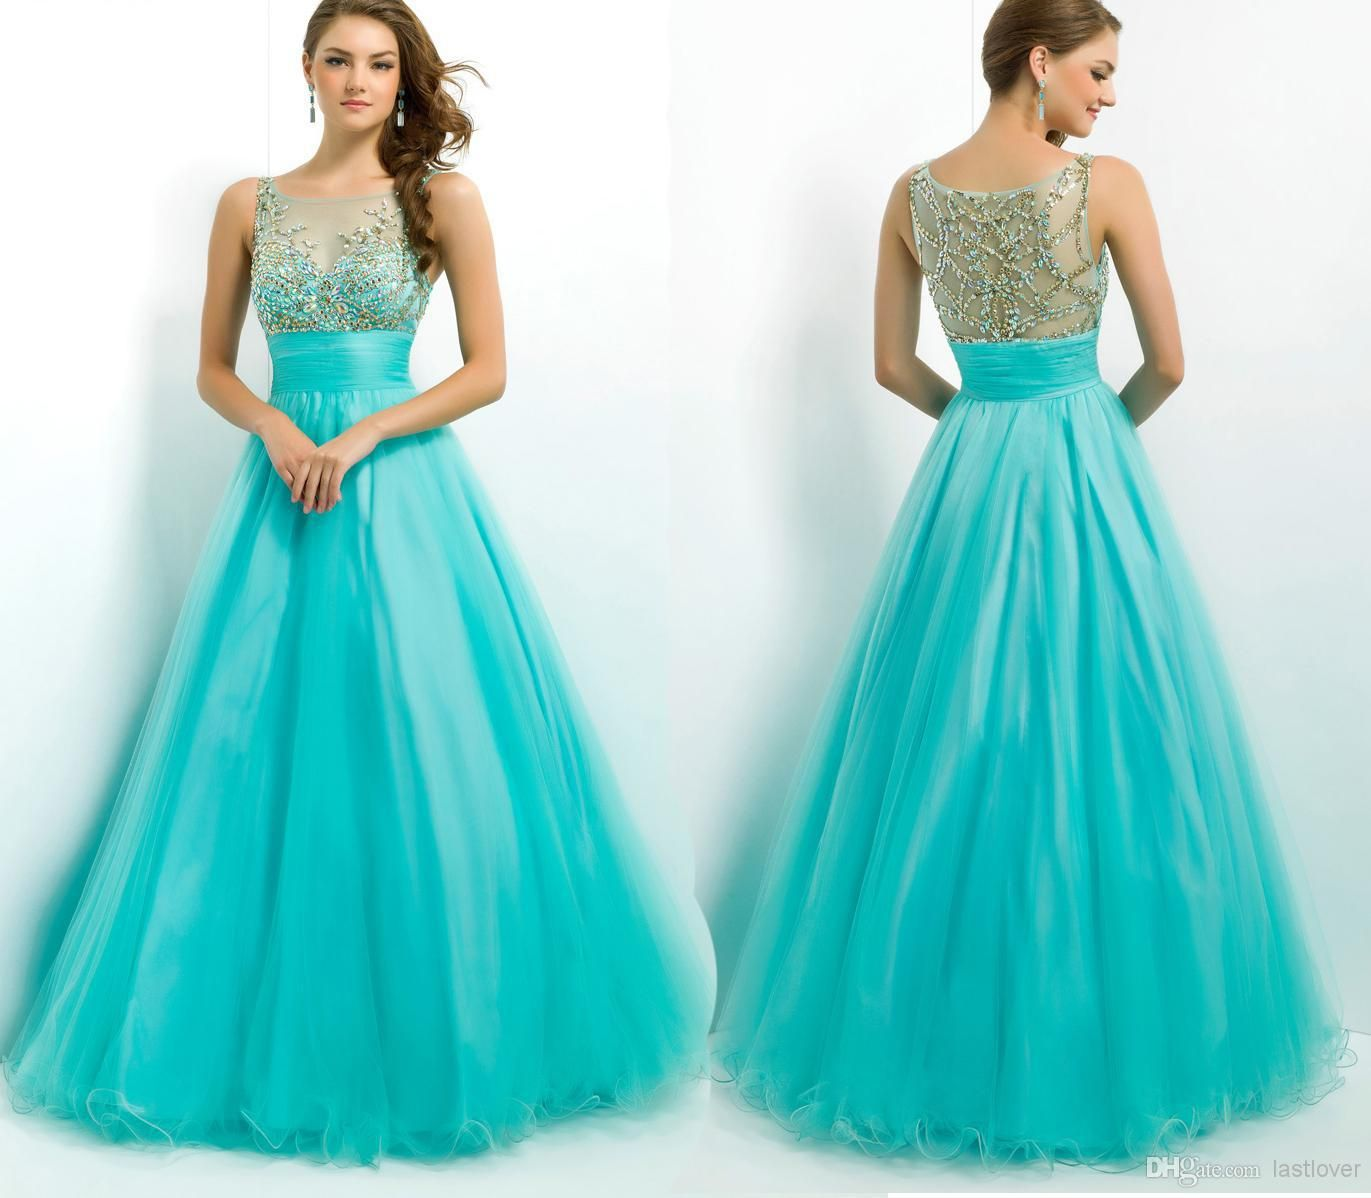 Pin by wedding gowns on Party dress @ Diadem Chennai | Pinterest ...